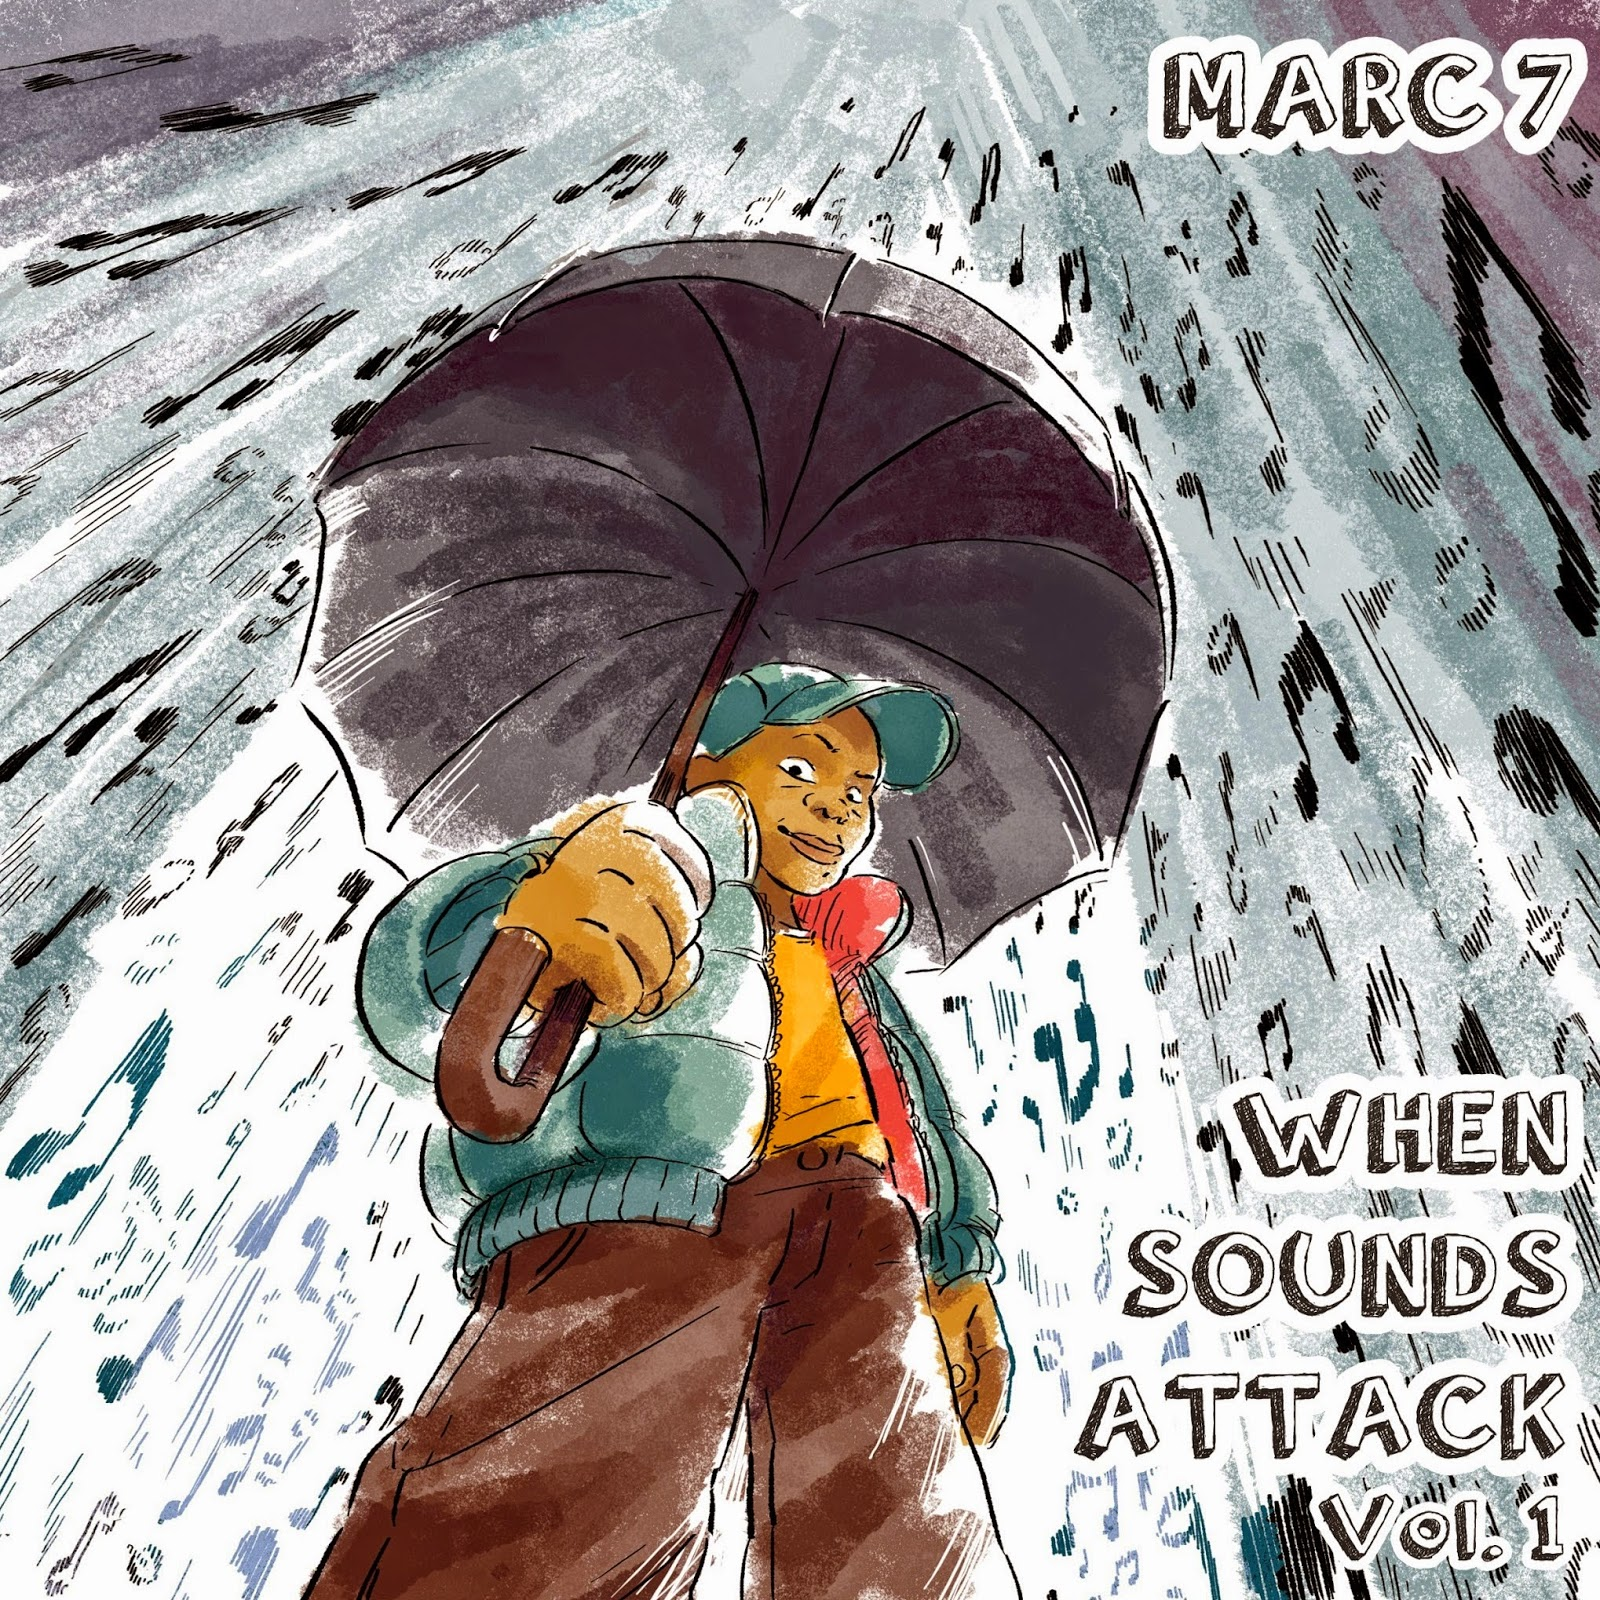 http://www.d4am.net/2015/03/marc-7-when-sounds-attack-vol-1.html